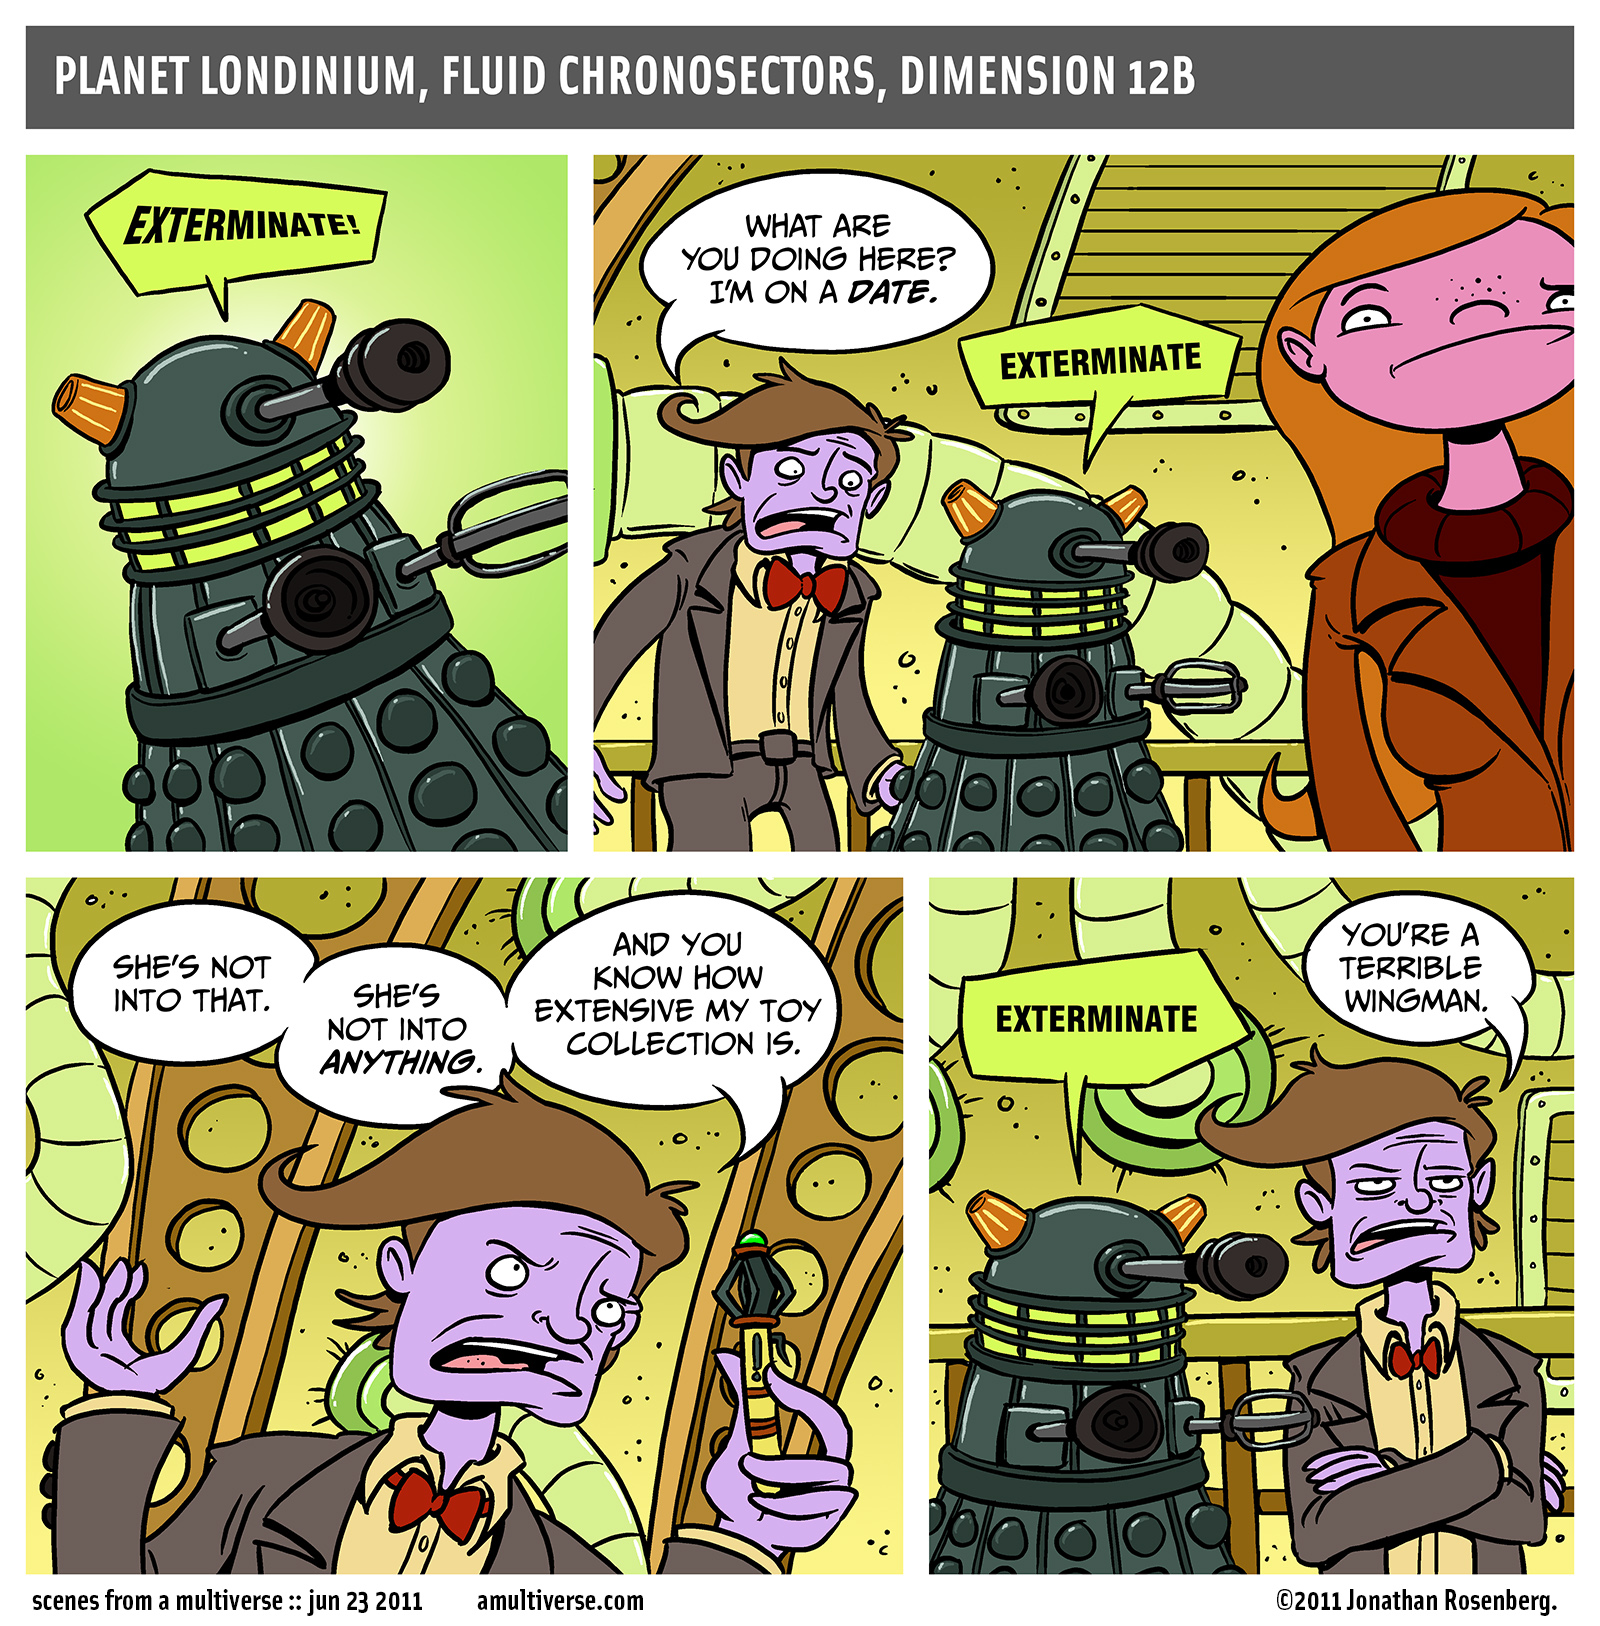 exterminate good times come on let's all exterminate and have a good time